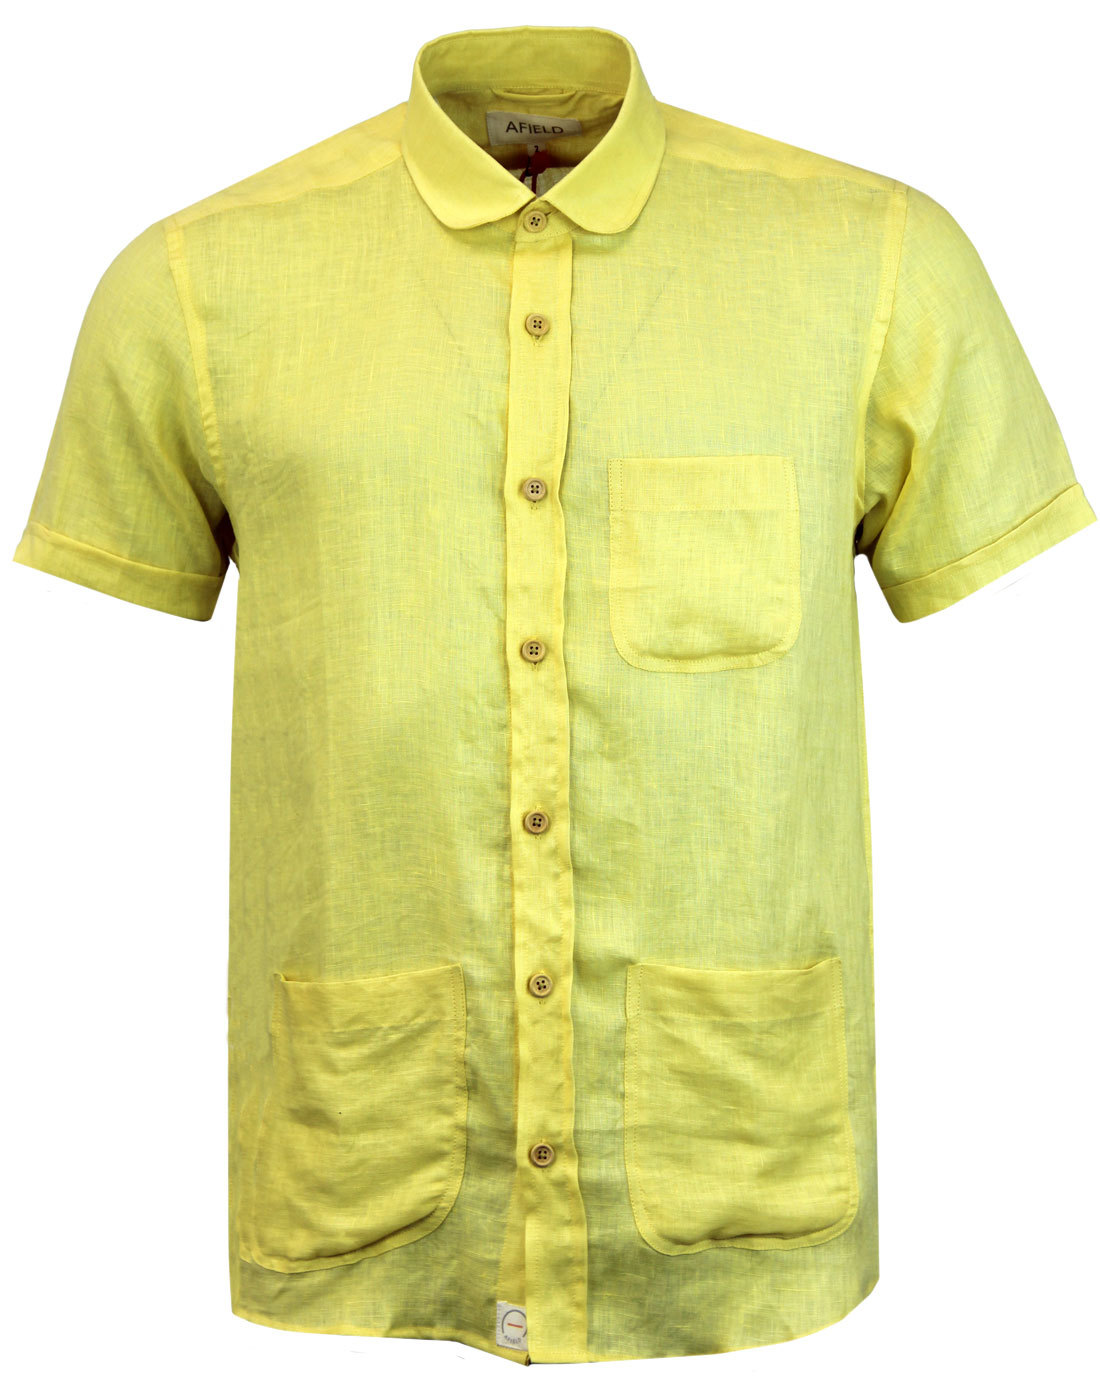 Santos AFIELD Retro Linen Slub Penny Collar Shirt